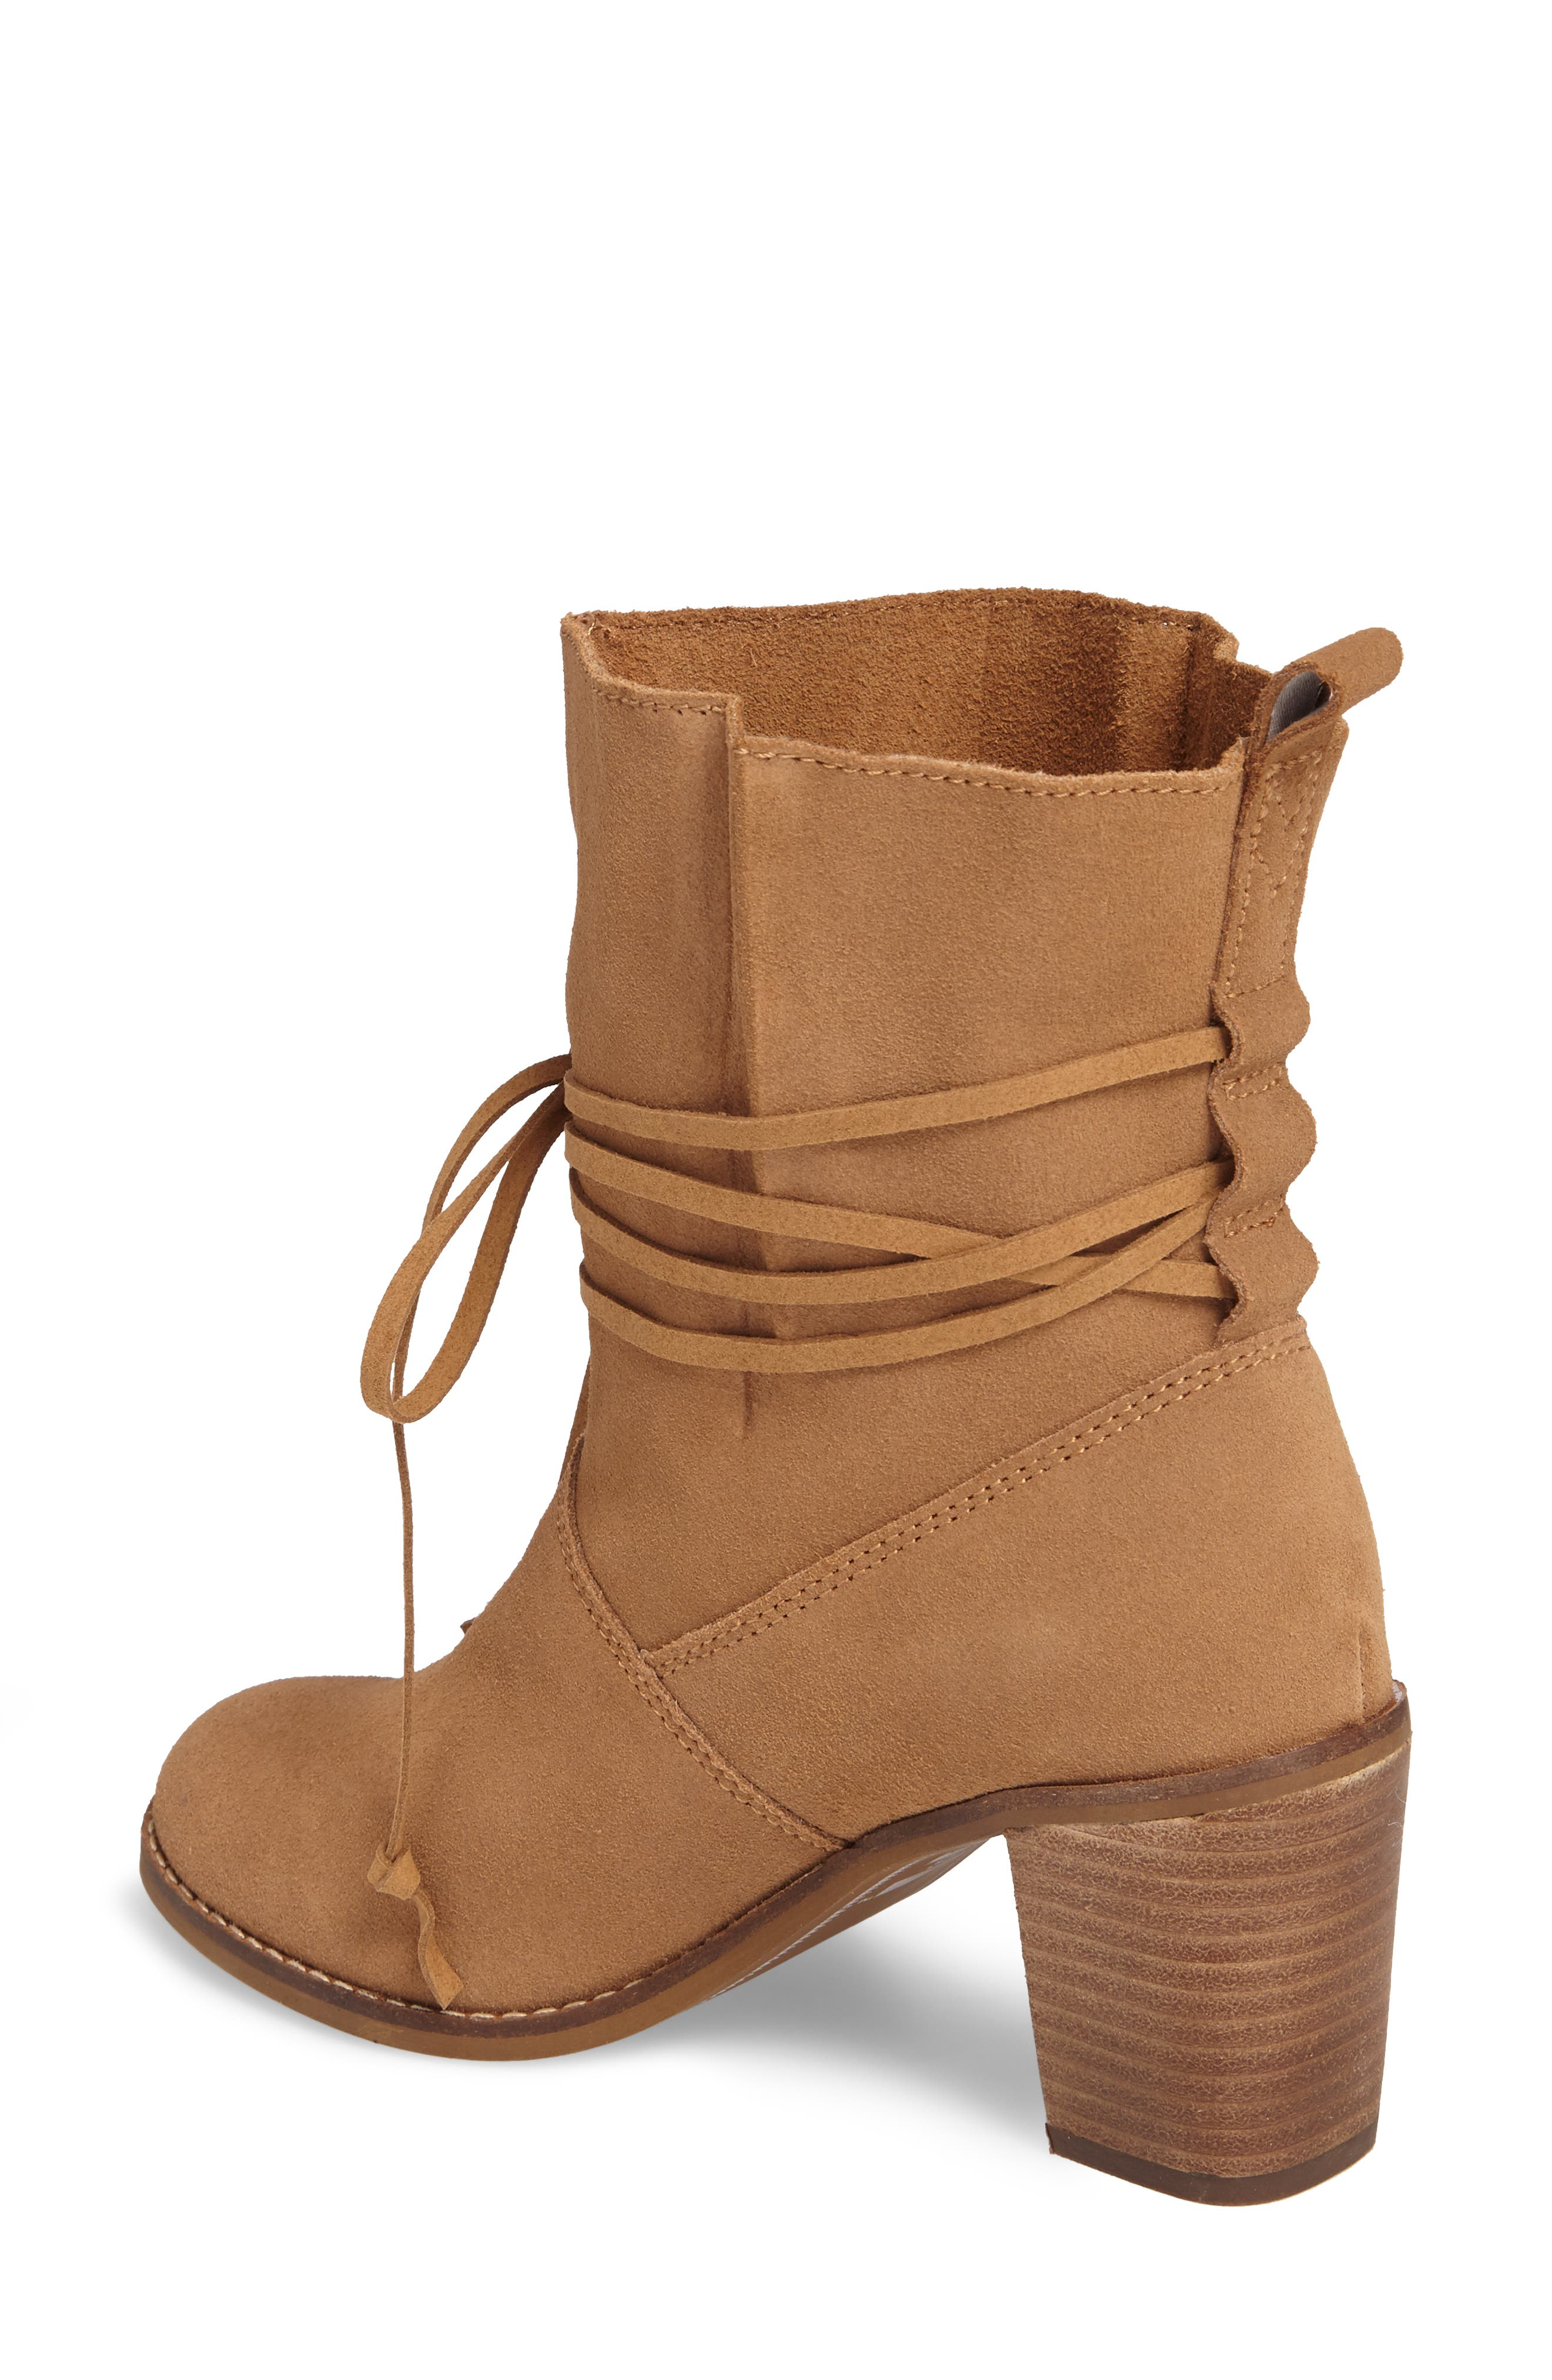 Mila Bootie,                             Alternate thumbnail 2, color,                             Toffee Suede